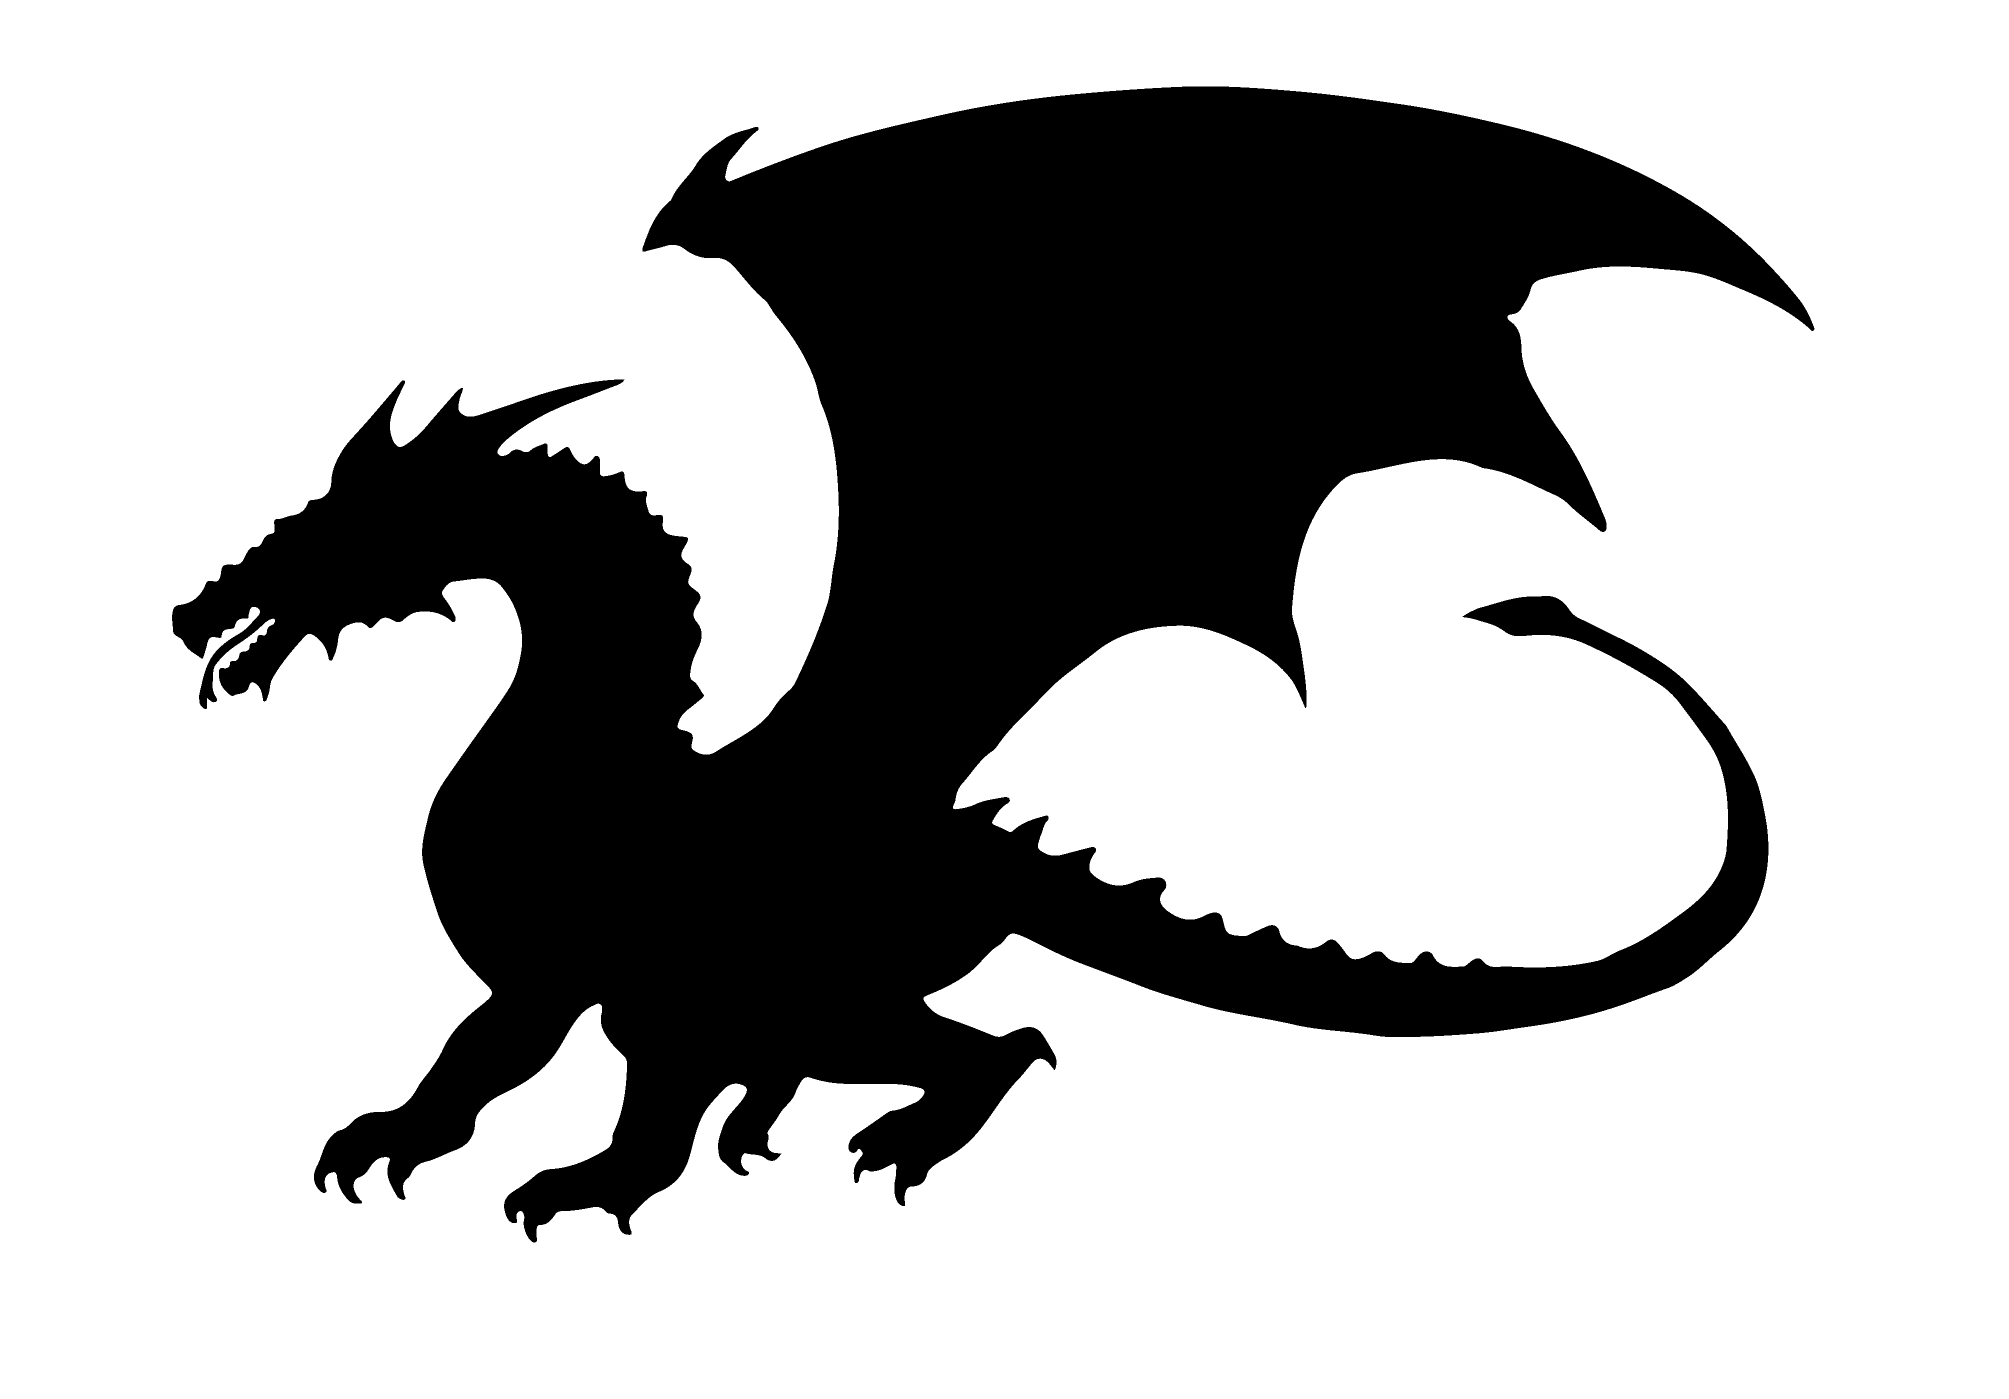 Dragon clipart game throne. Silhouette free at getdrawings